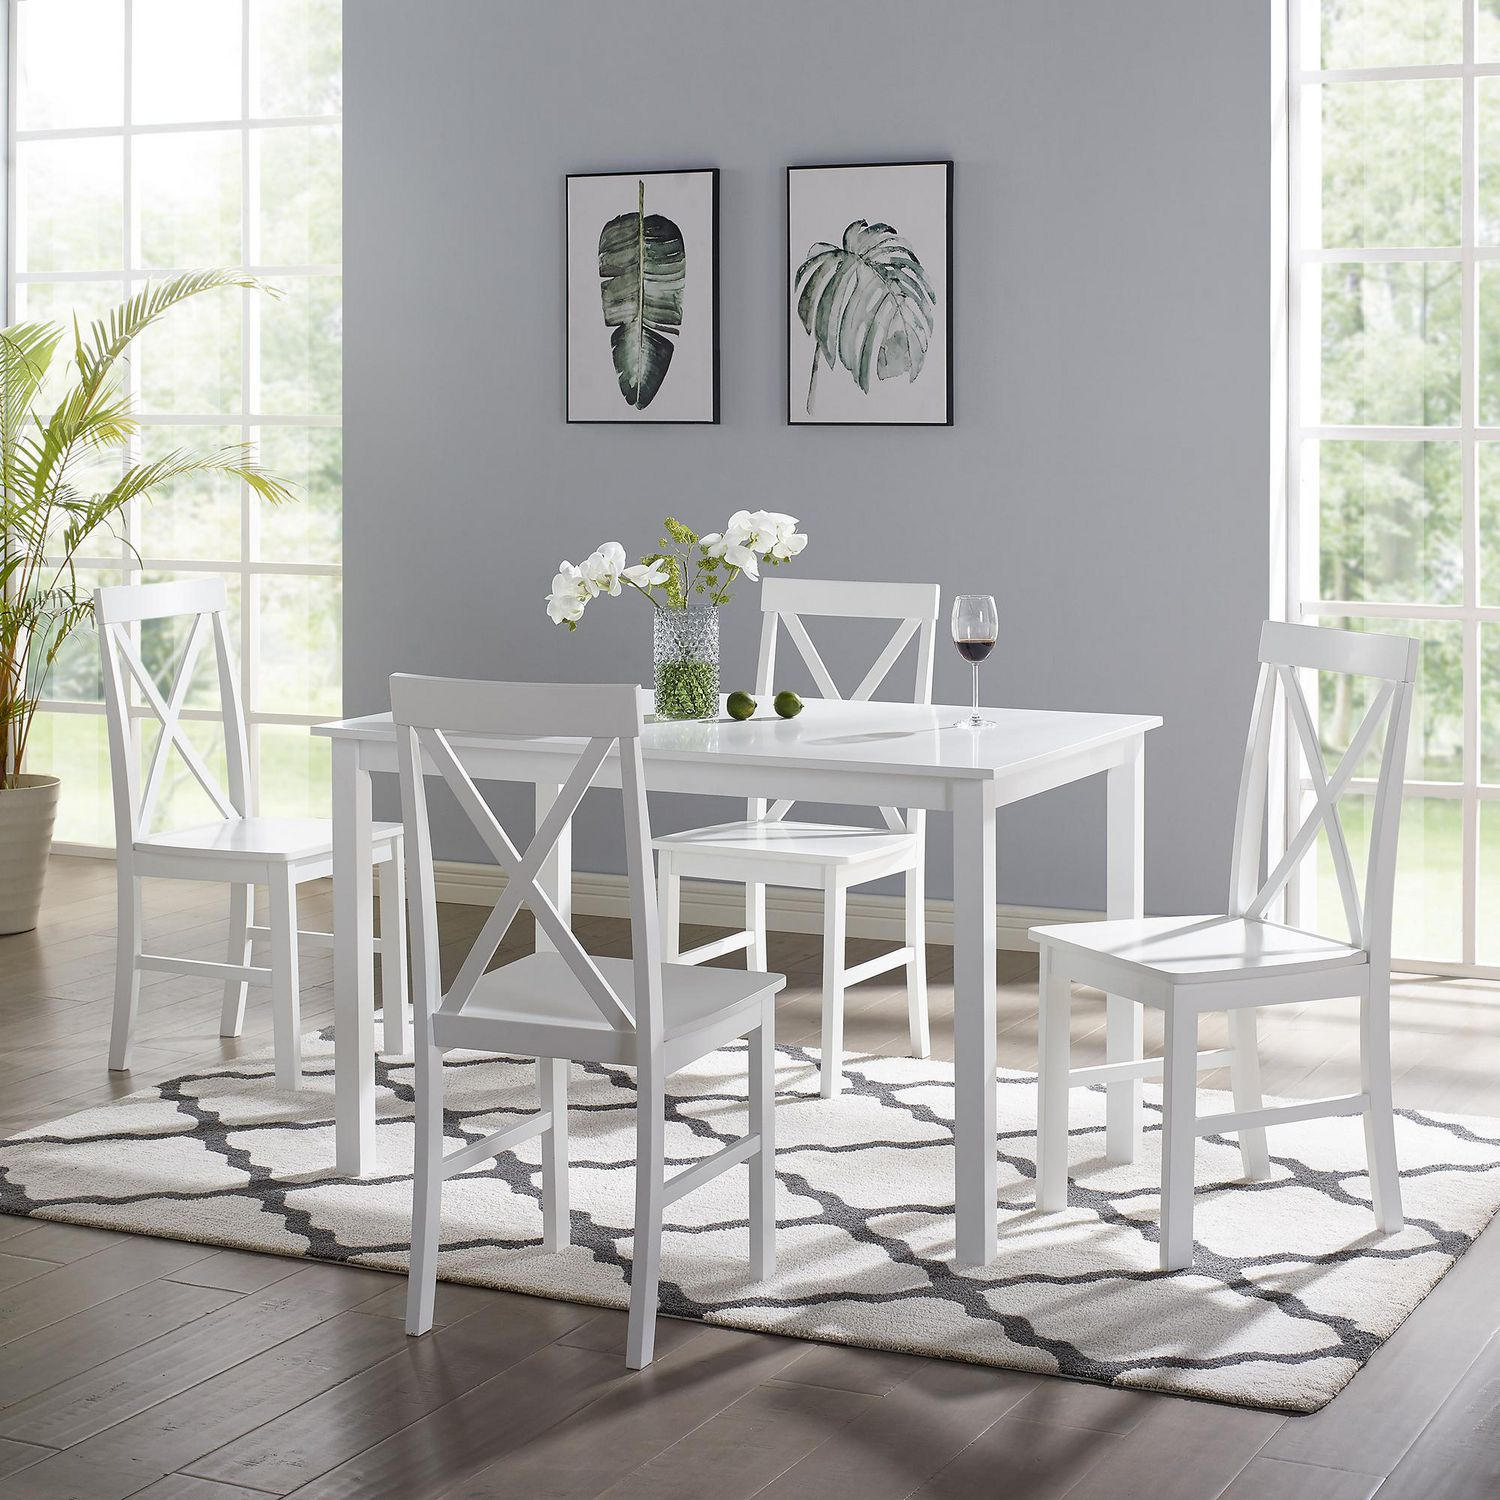 4 Person Modern Farmhouse Dining Table And Chair Set White White Walmart Canada